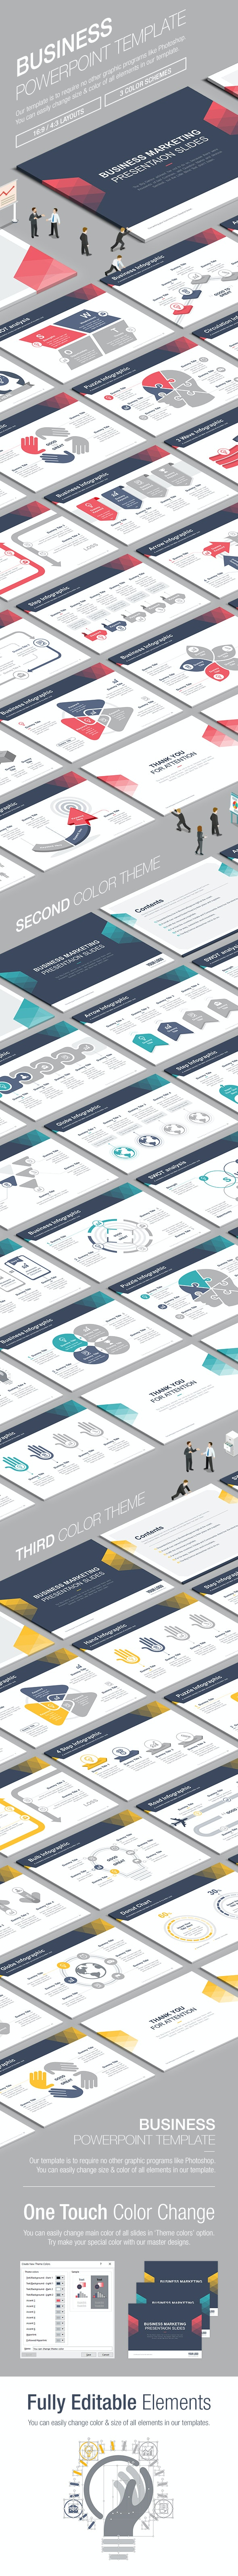 Business Powerpoint Template 007 - Business PowerPoint Templates